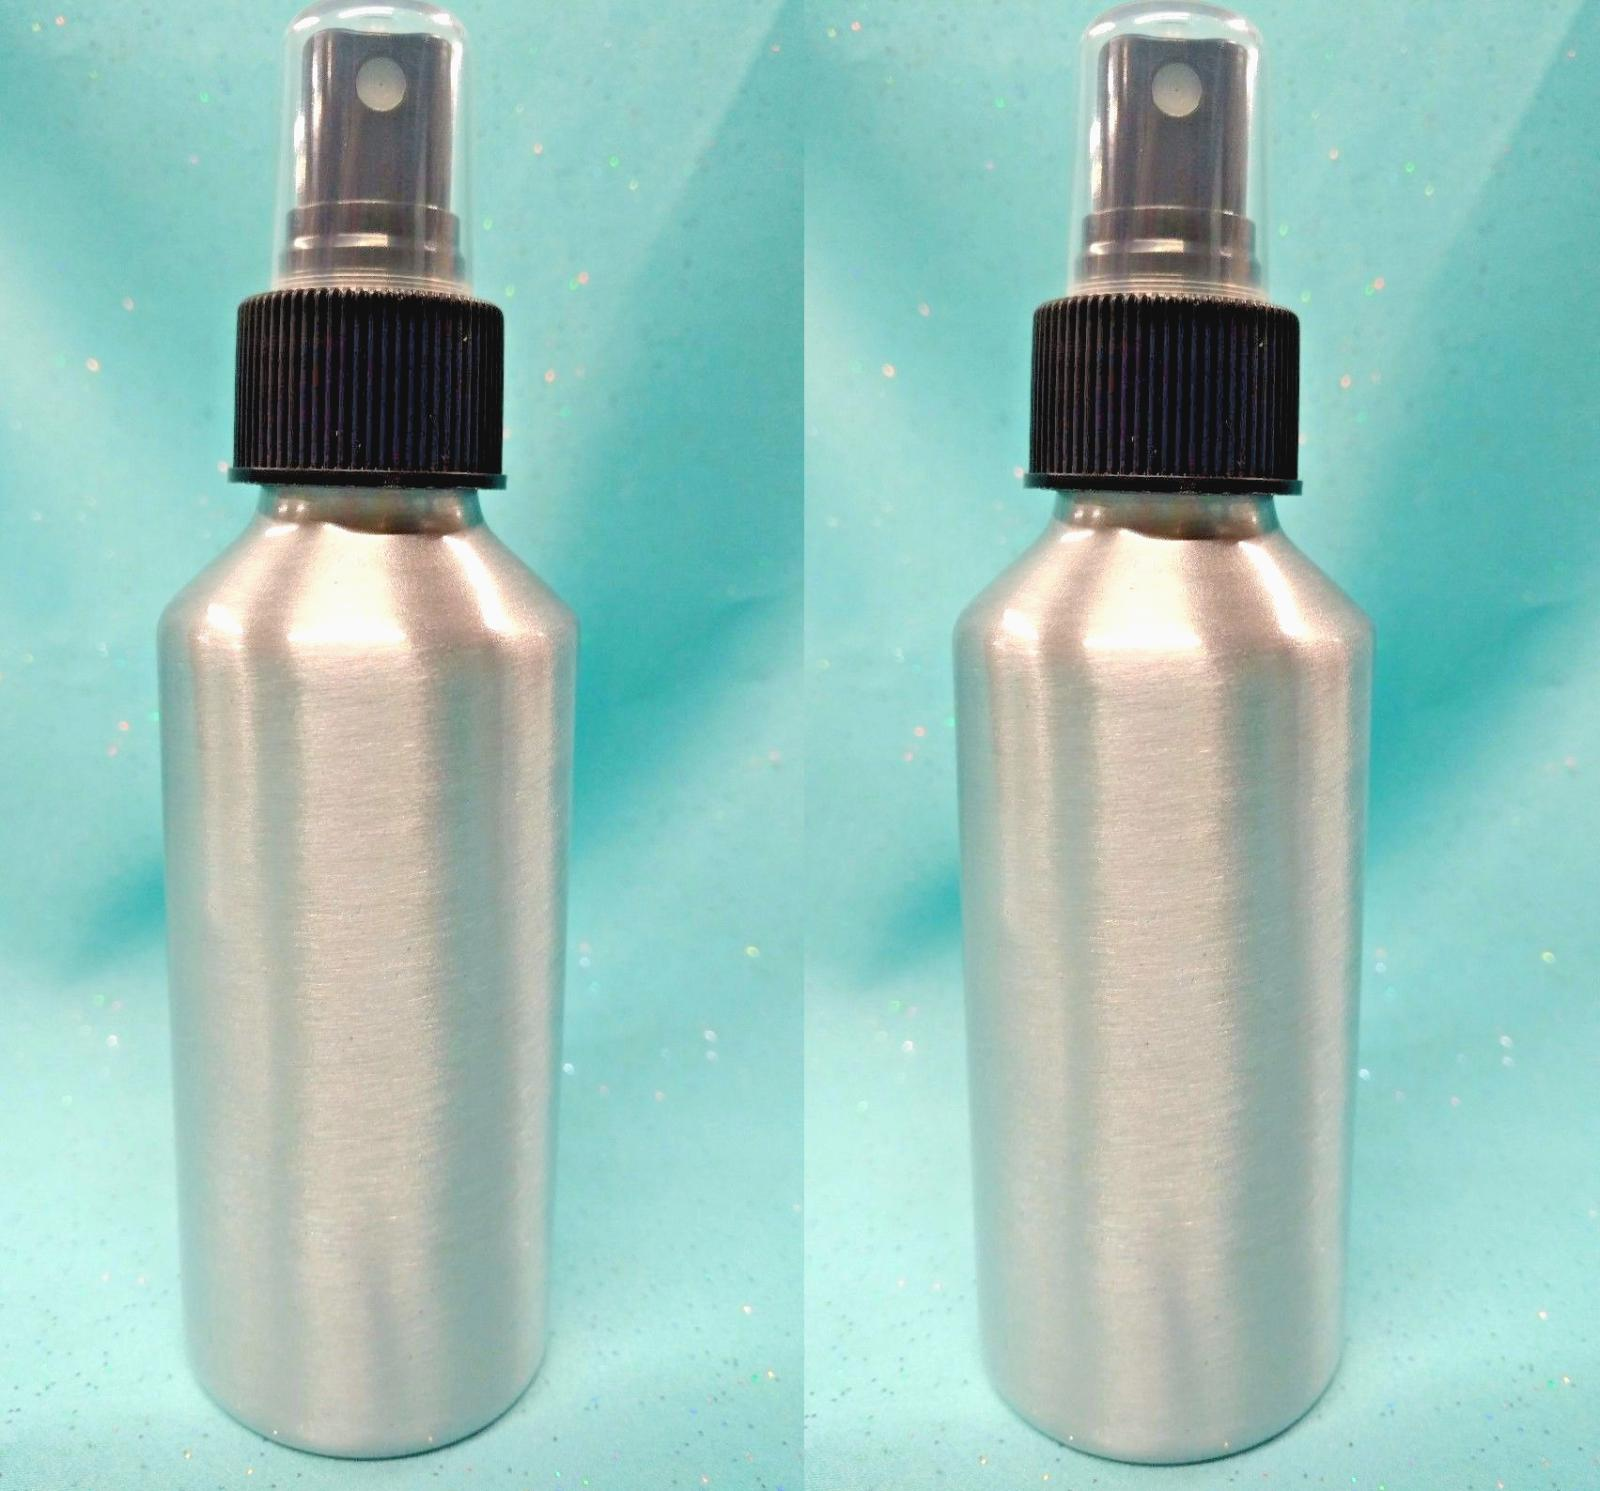 2 - 4 oz Silver ALUMINUM Fine Mist Spray Bottle Sprayer Atom